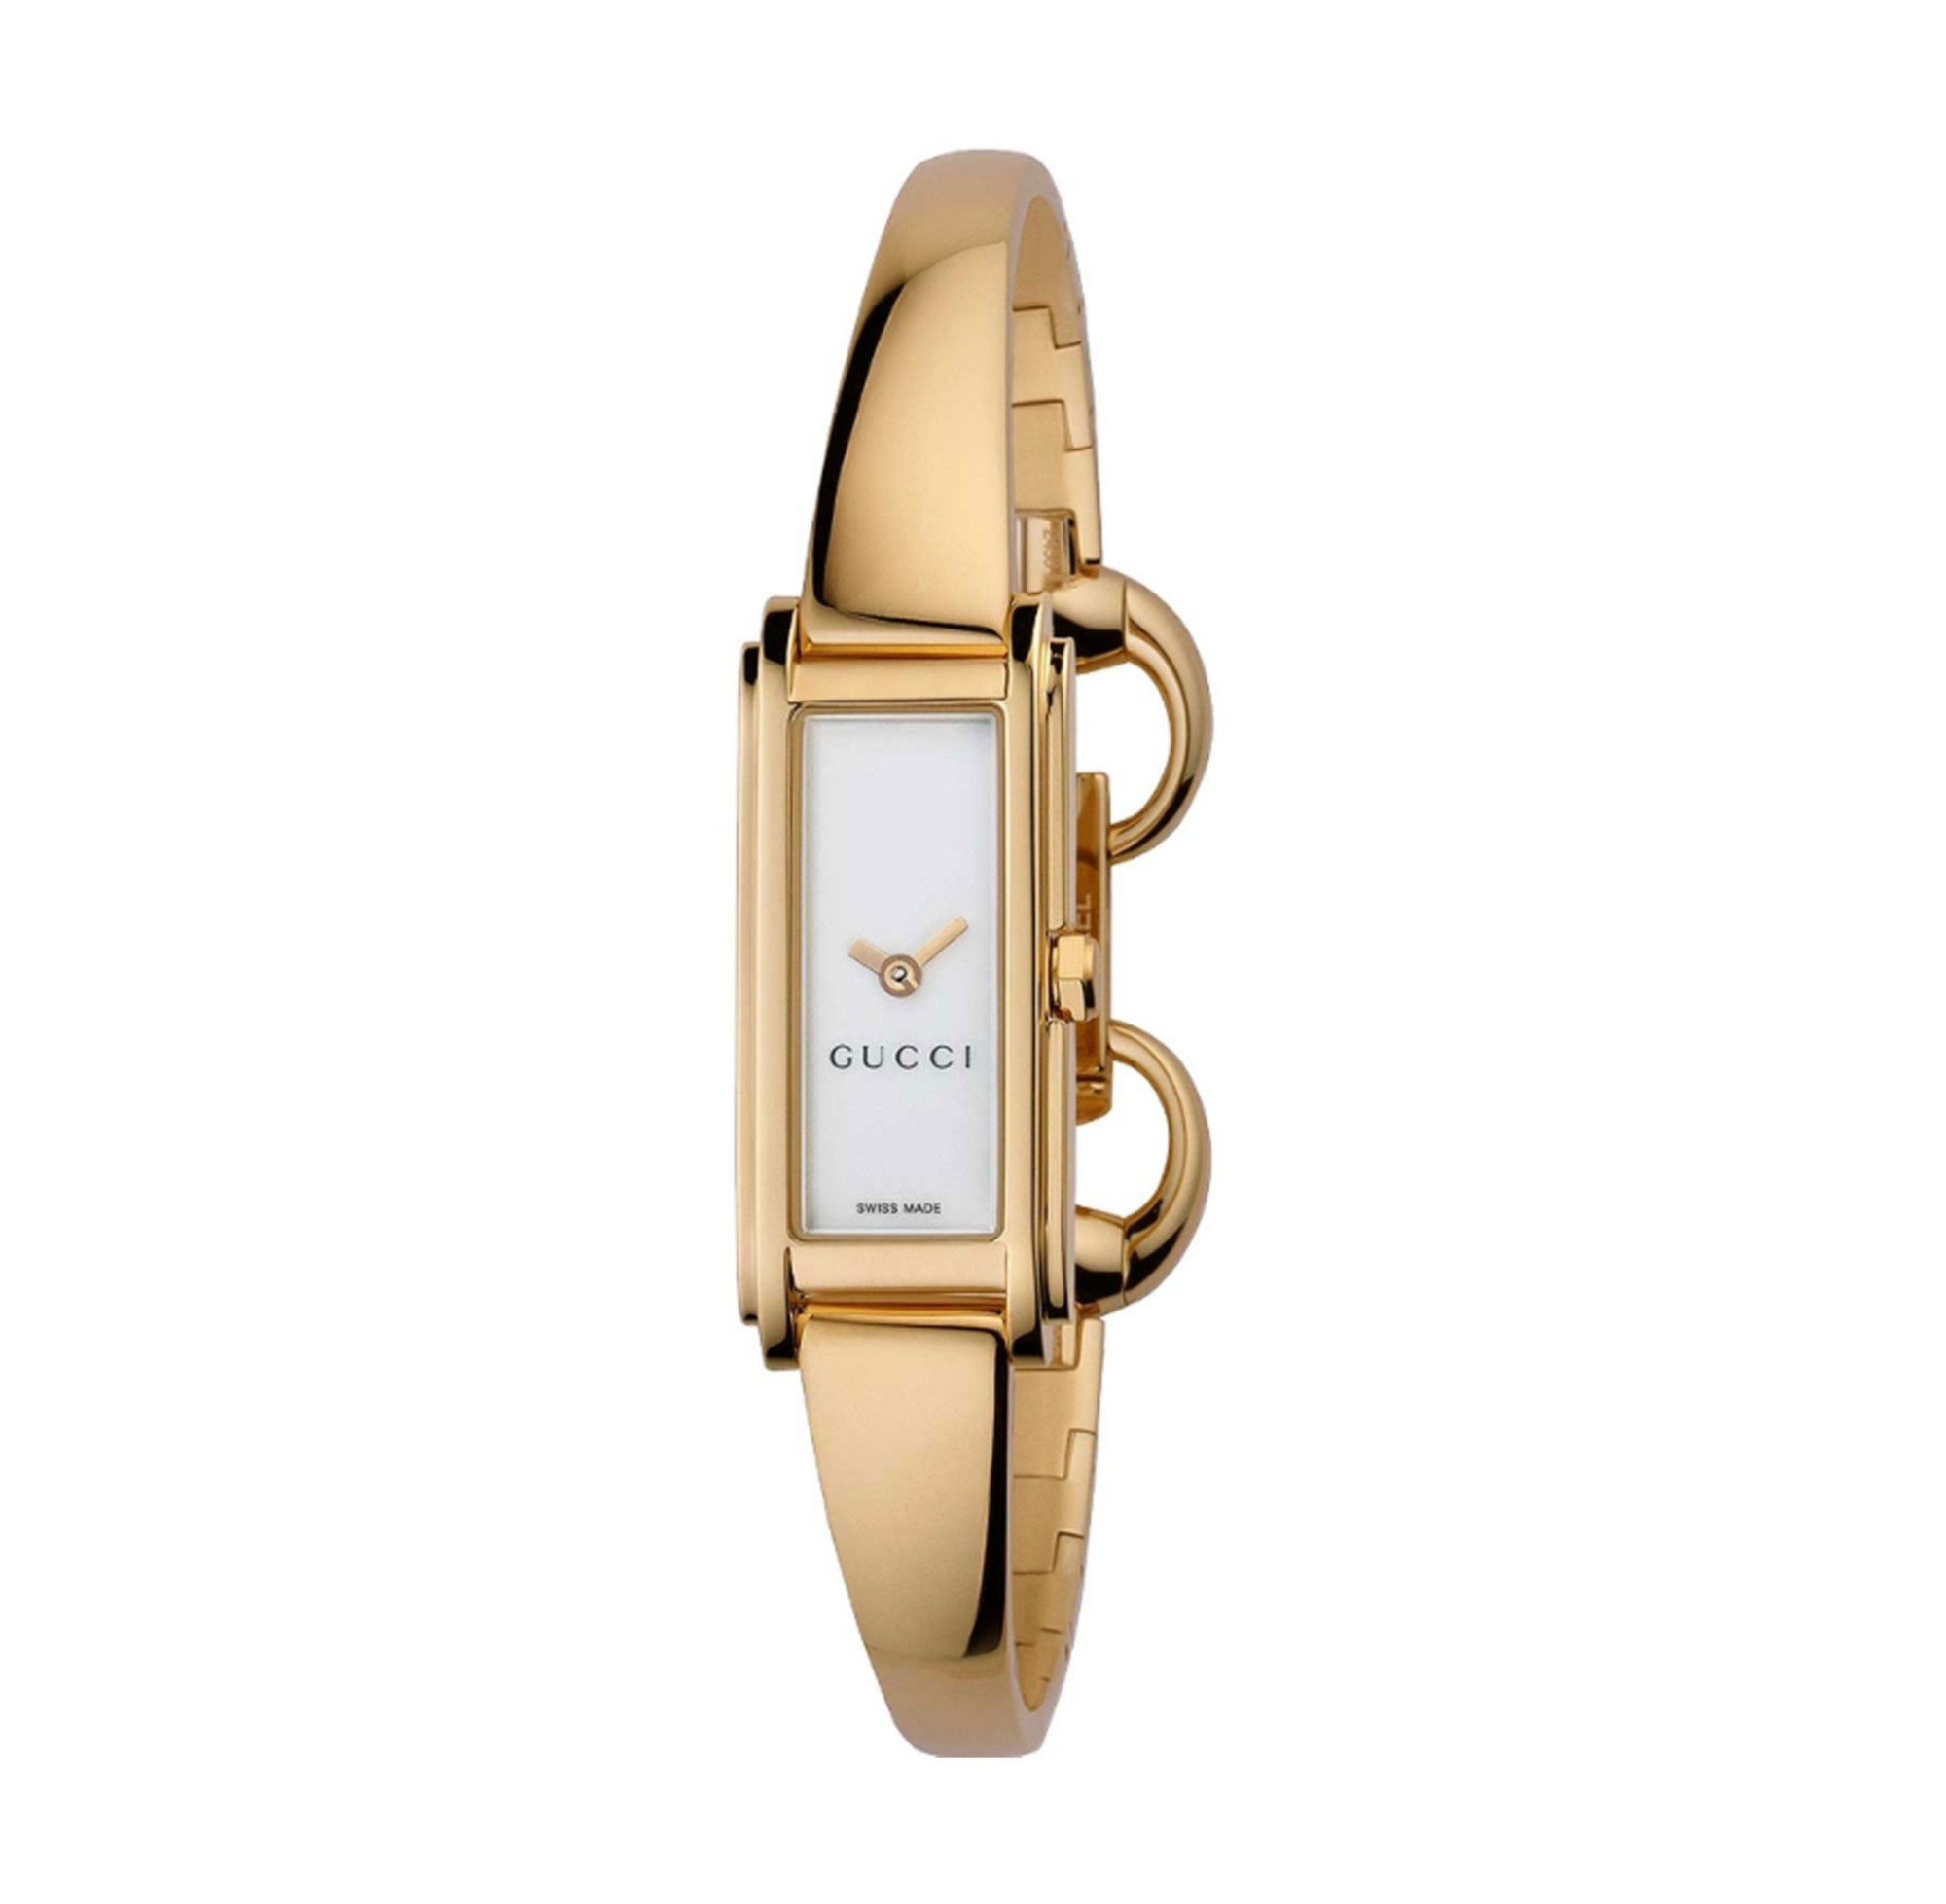 d40e3d5fd61 Gucci Gold Bracelet Watch Women S - Bracelet Photos Onneyuonsen.Com